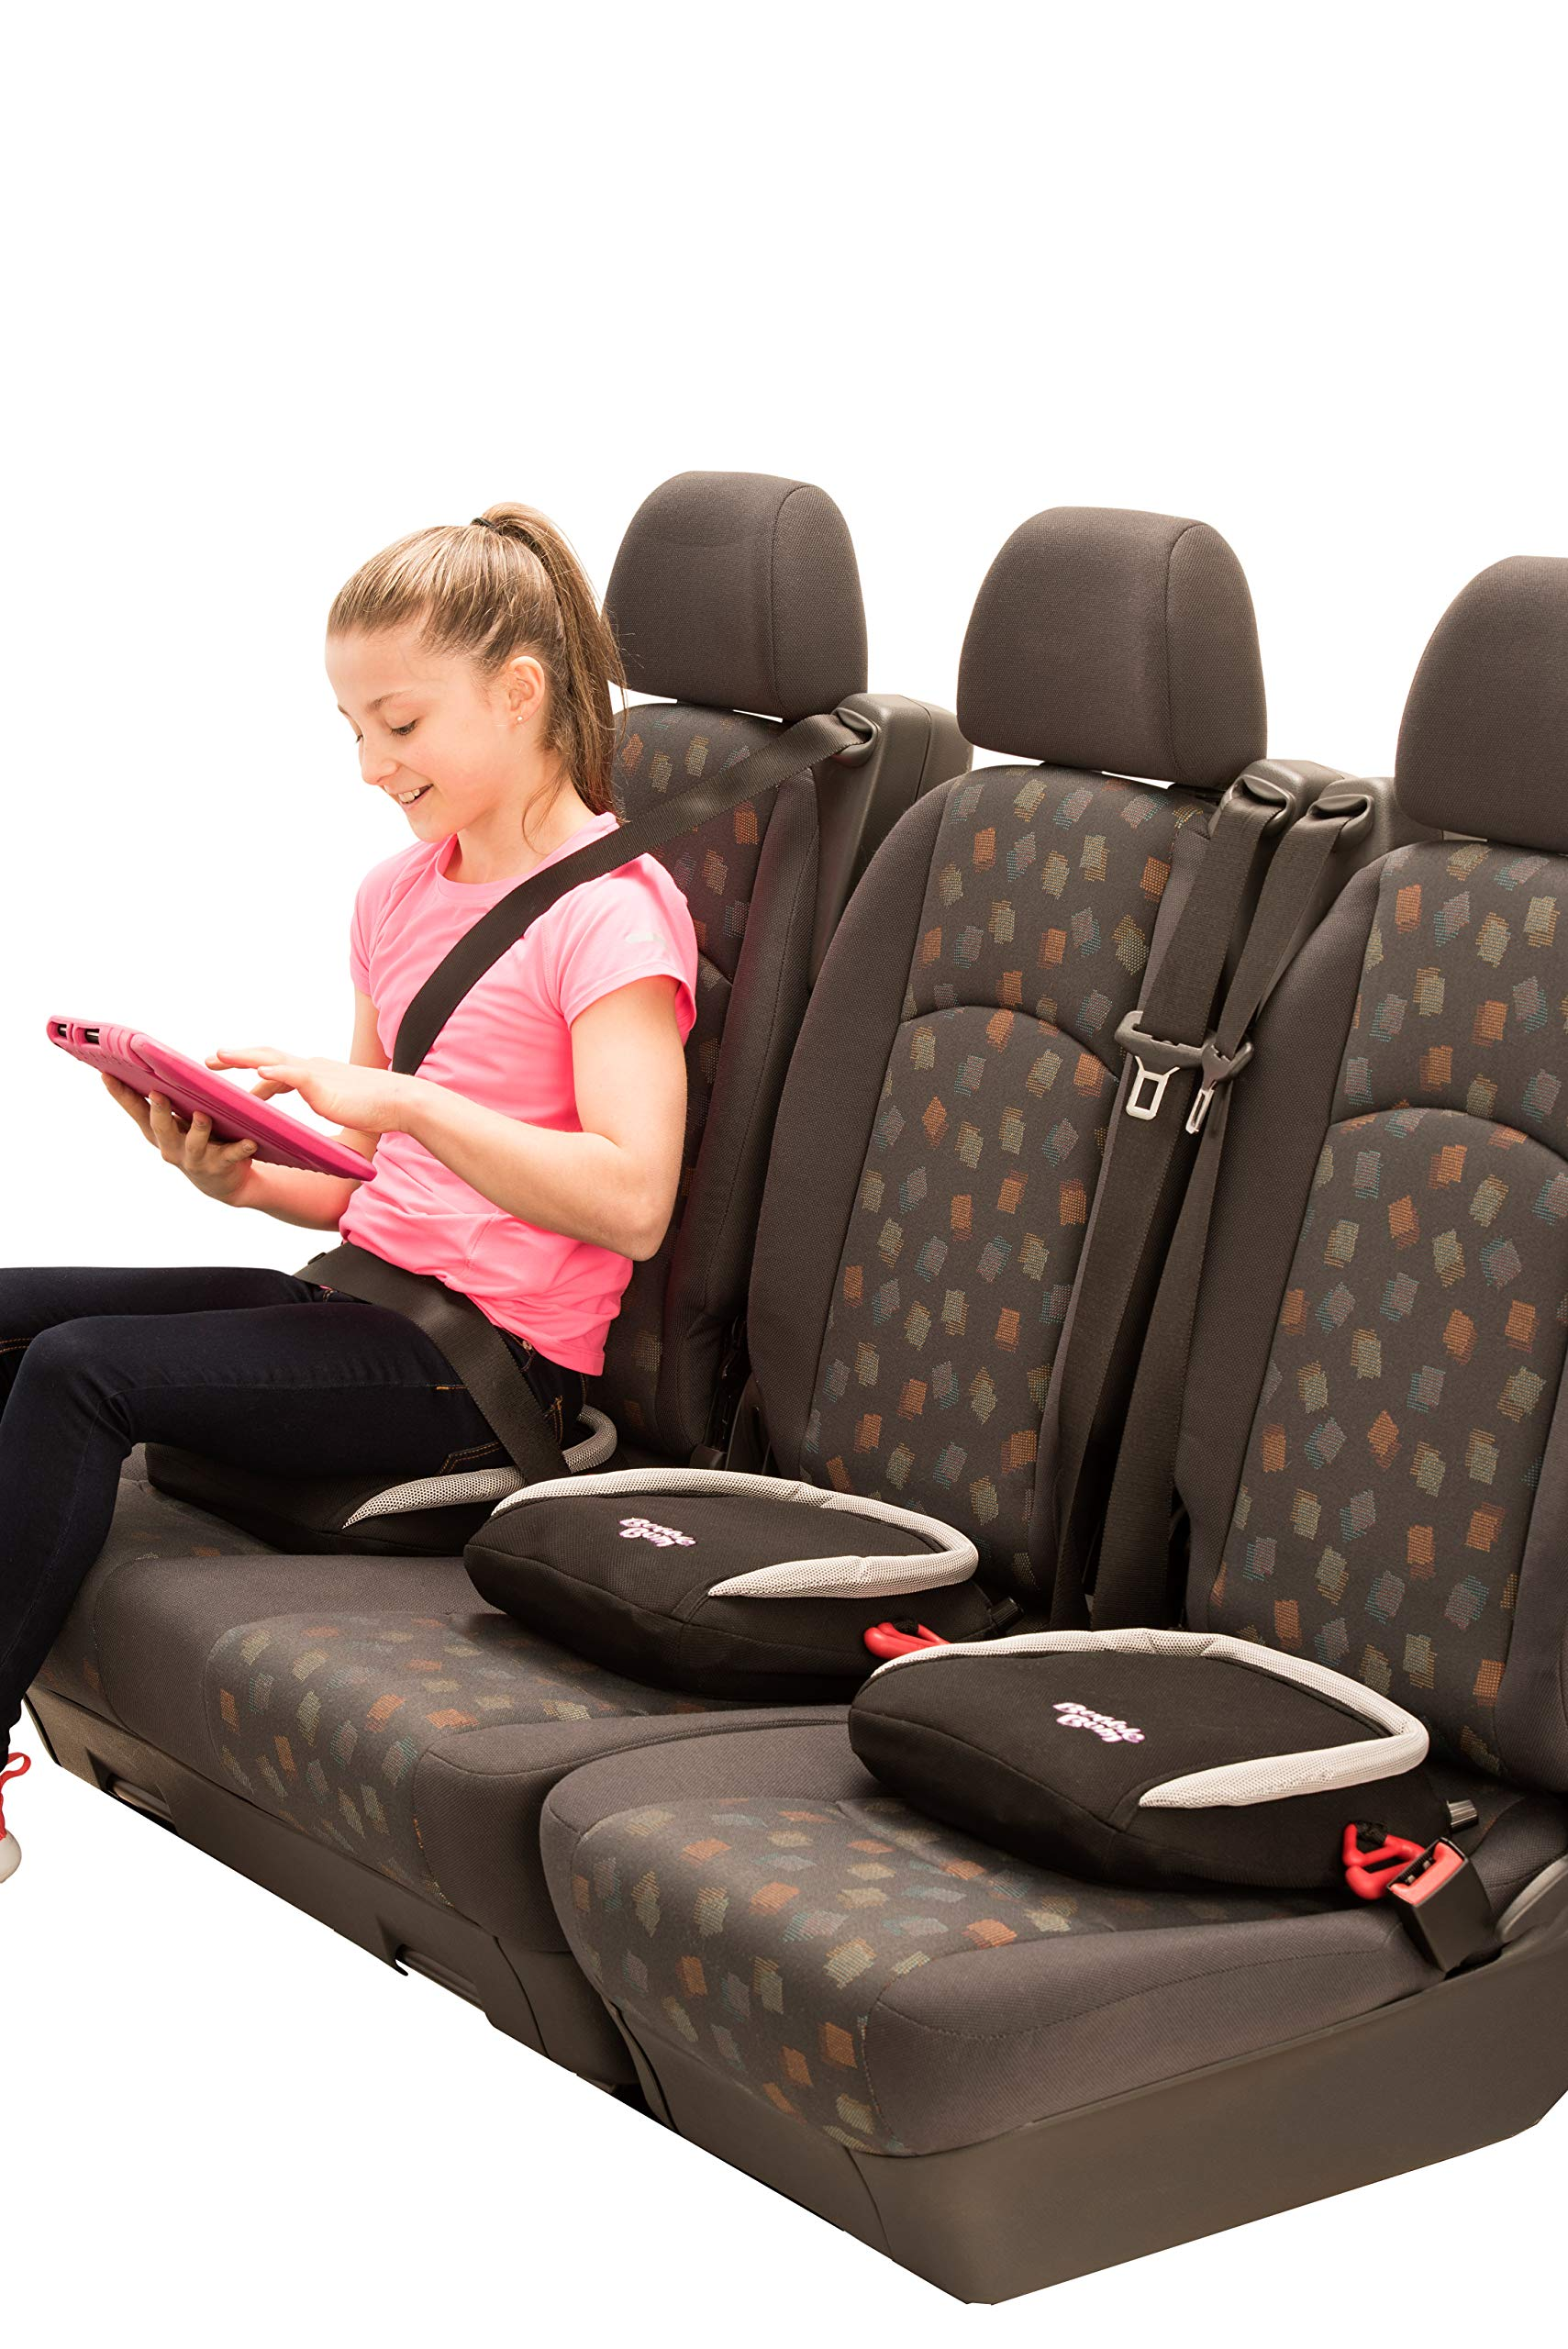 BubbleBum Inflatable Travel Car Booster Seat, Group 2/3, Black  The Award Winning BubbleBum Car Booster Seat The Inflatable, portable & safe booster seat for children aged 4 - 11, 15 - 36kg (with the provision of a vehicle headrest) Approved to the EU Safety Standard R44.04 for both Groups 2 and 3. Dimension - When inflated the seat measures 11 x11 x 4.5 Inches.  When deflated the seat measures 11.8 x 5.9 x 3.9 Inches.  Tip - ideal as you can now fit three across the back 7